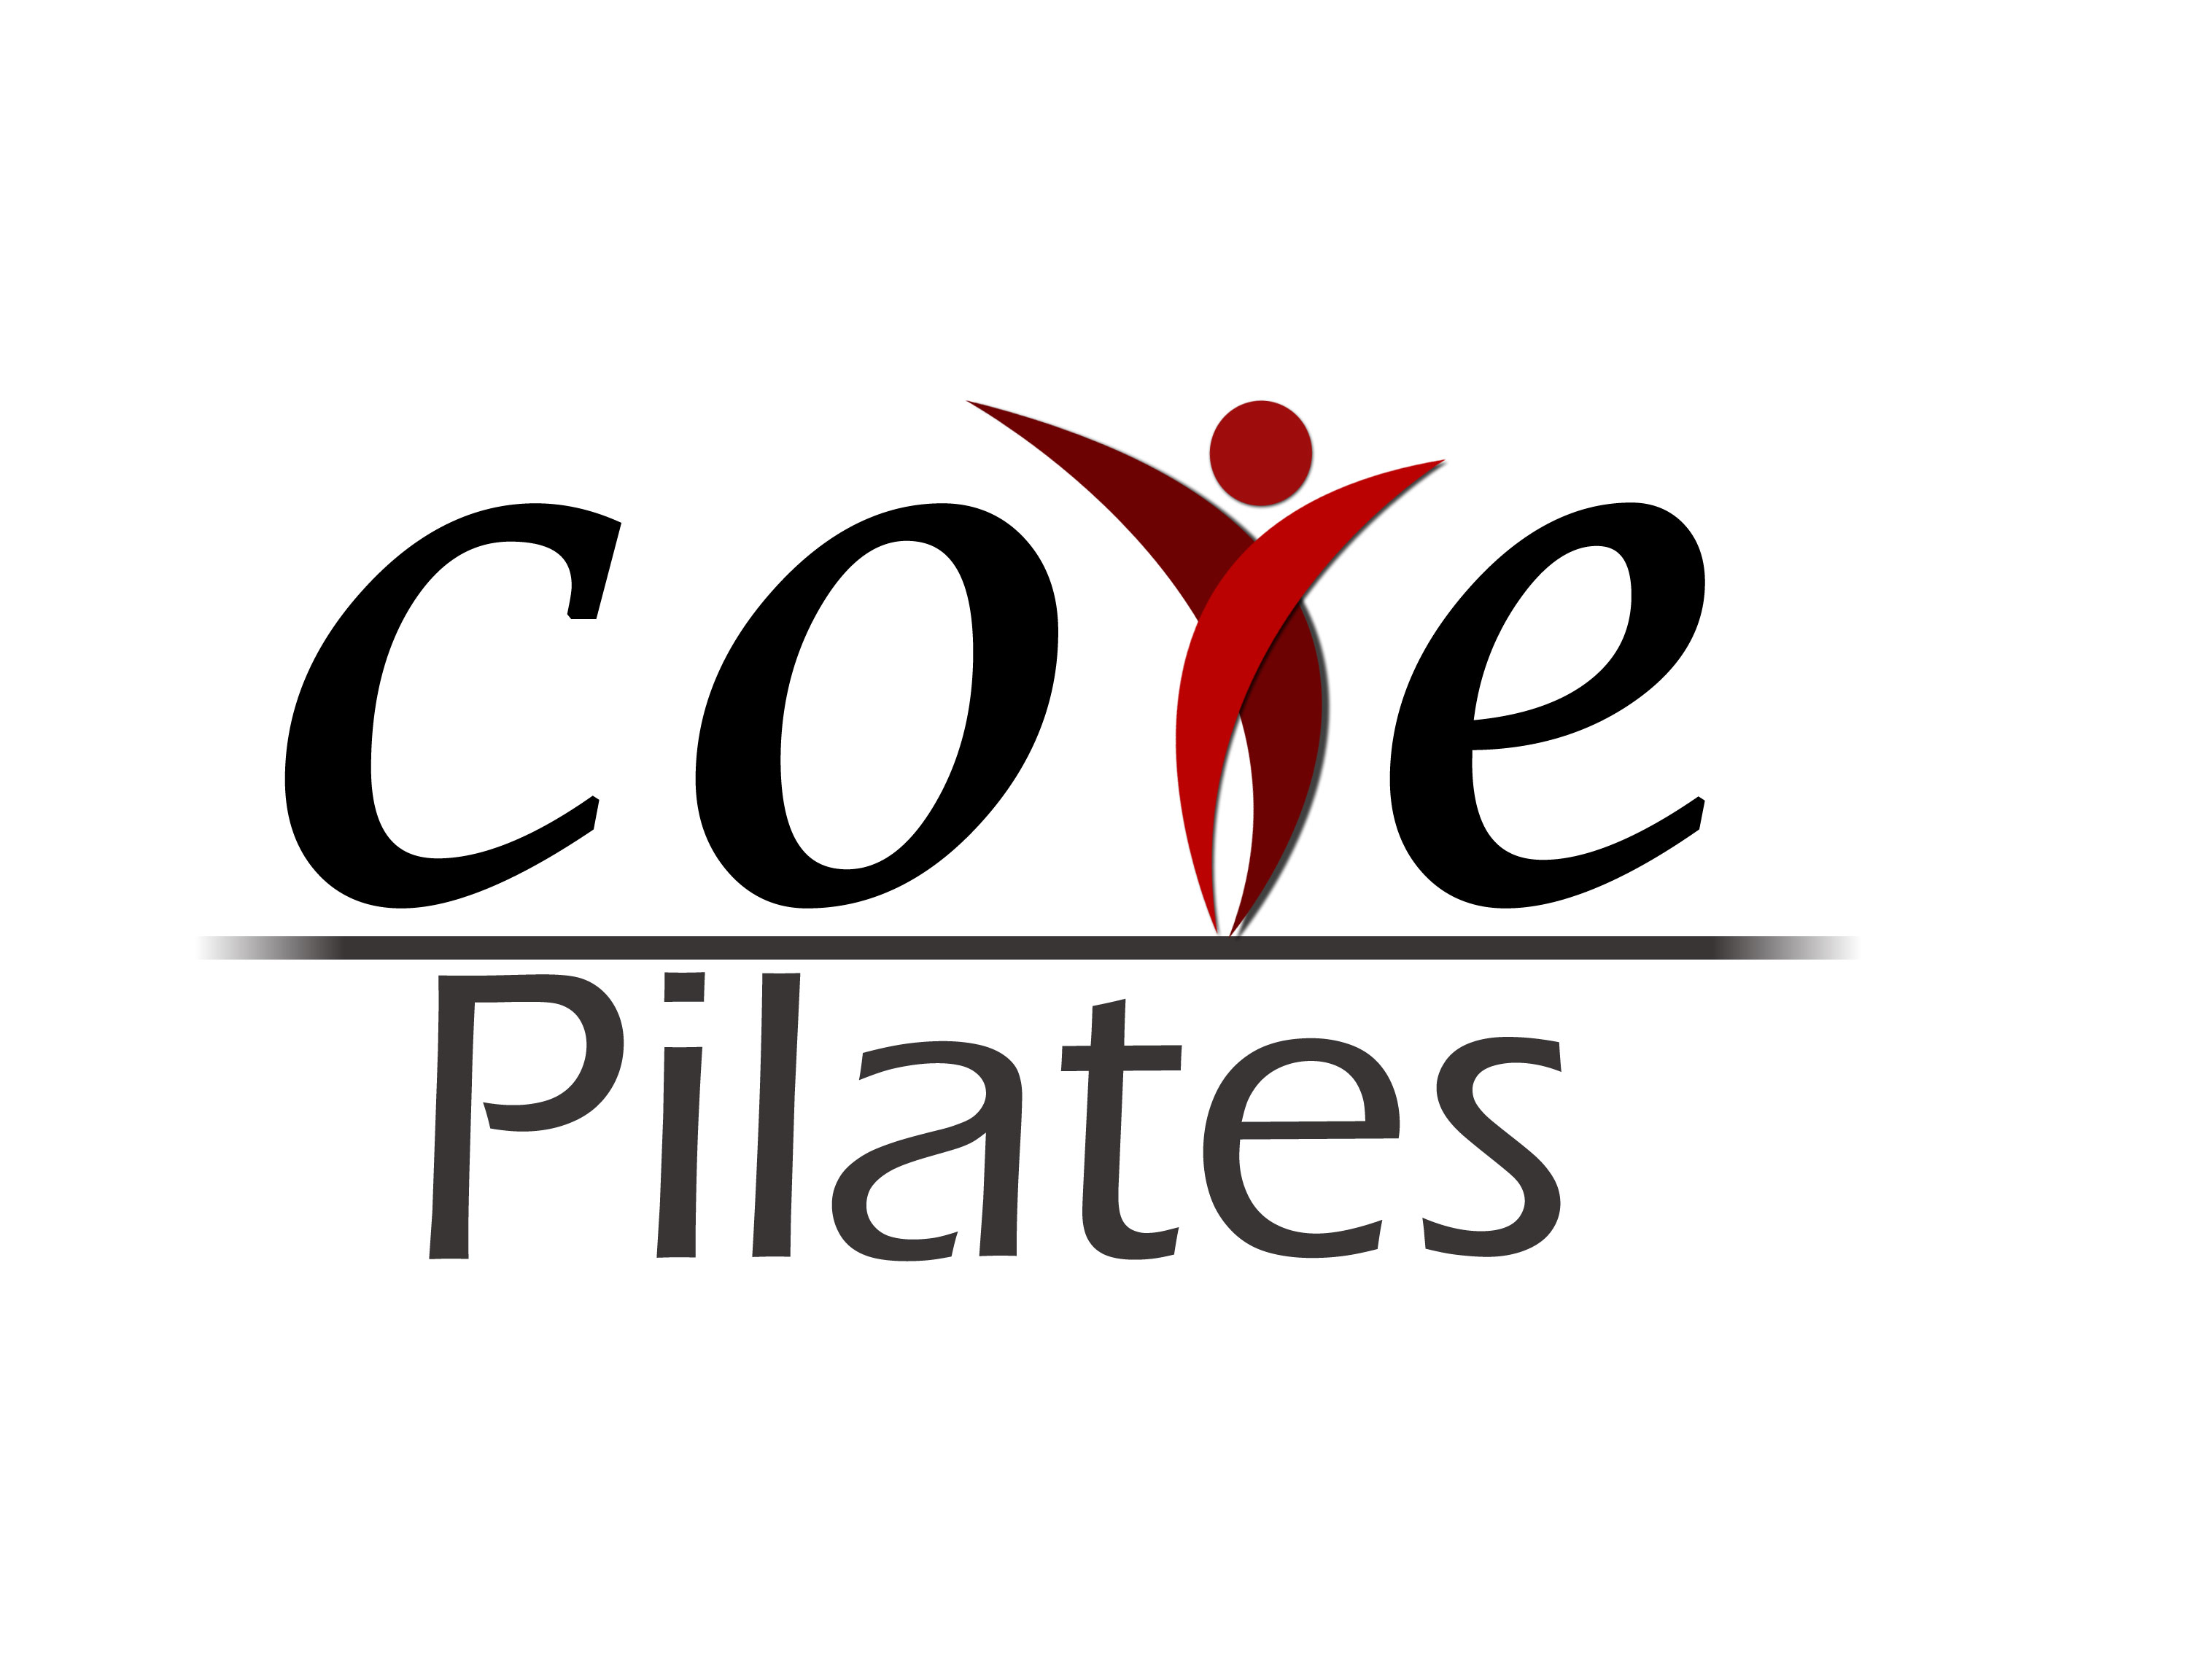 Logo Design by Nishanth Np - Entry No. 206 in the Logo Design Contest Core Pilates Logo Design.